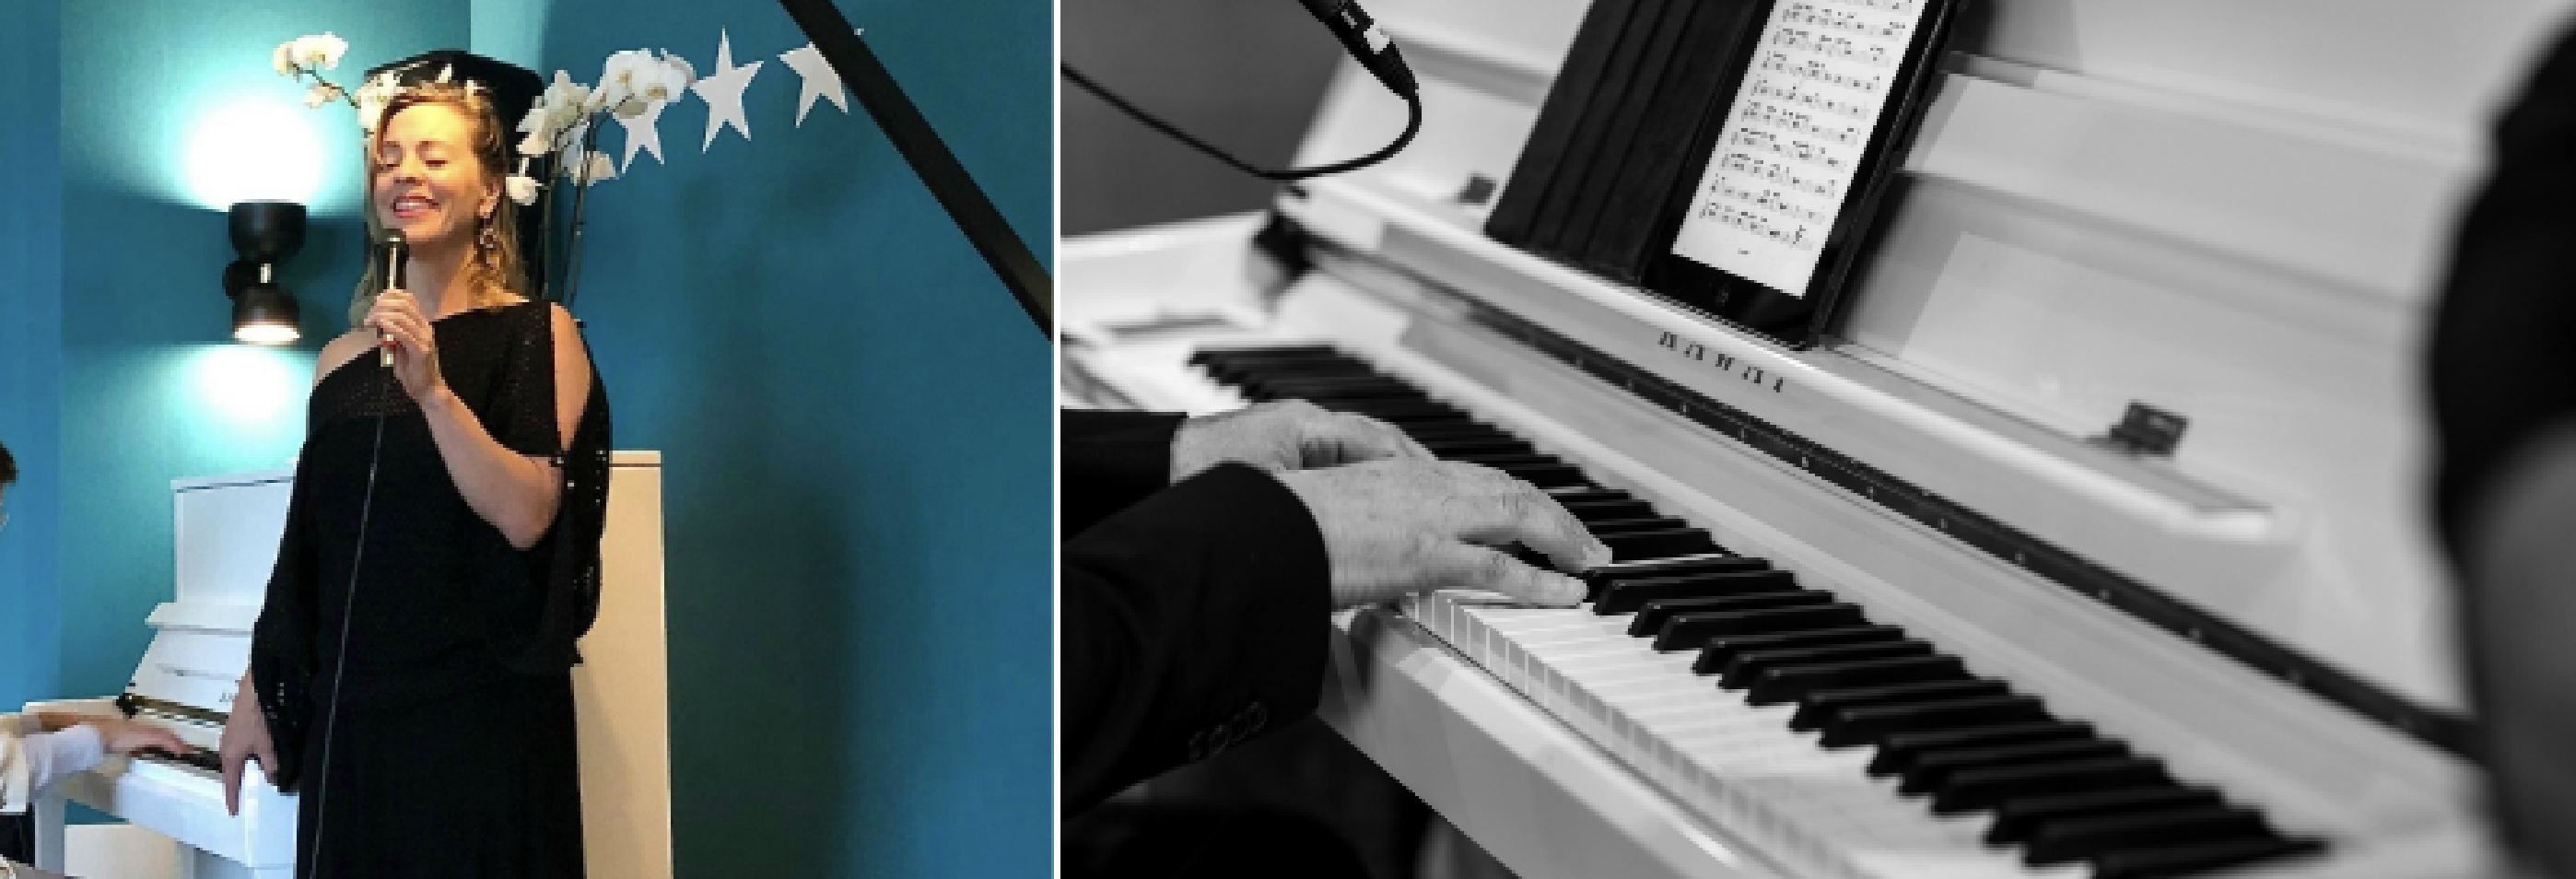 SOLD OUT! Friday 13th December – Pre-Christmas Live Jazz Evening & Dinner at Royal Antibes Hotel